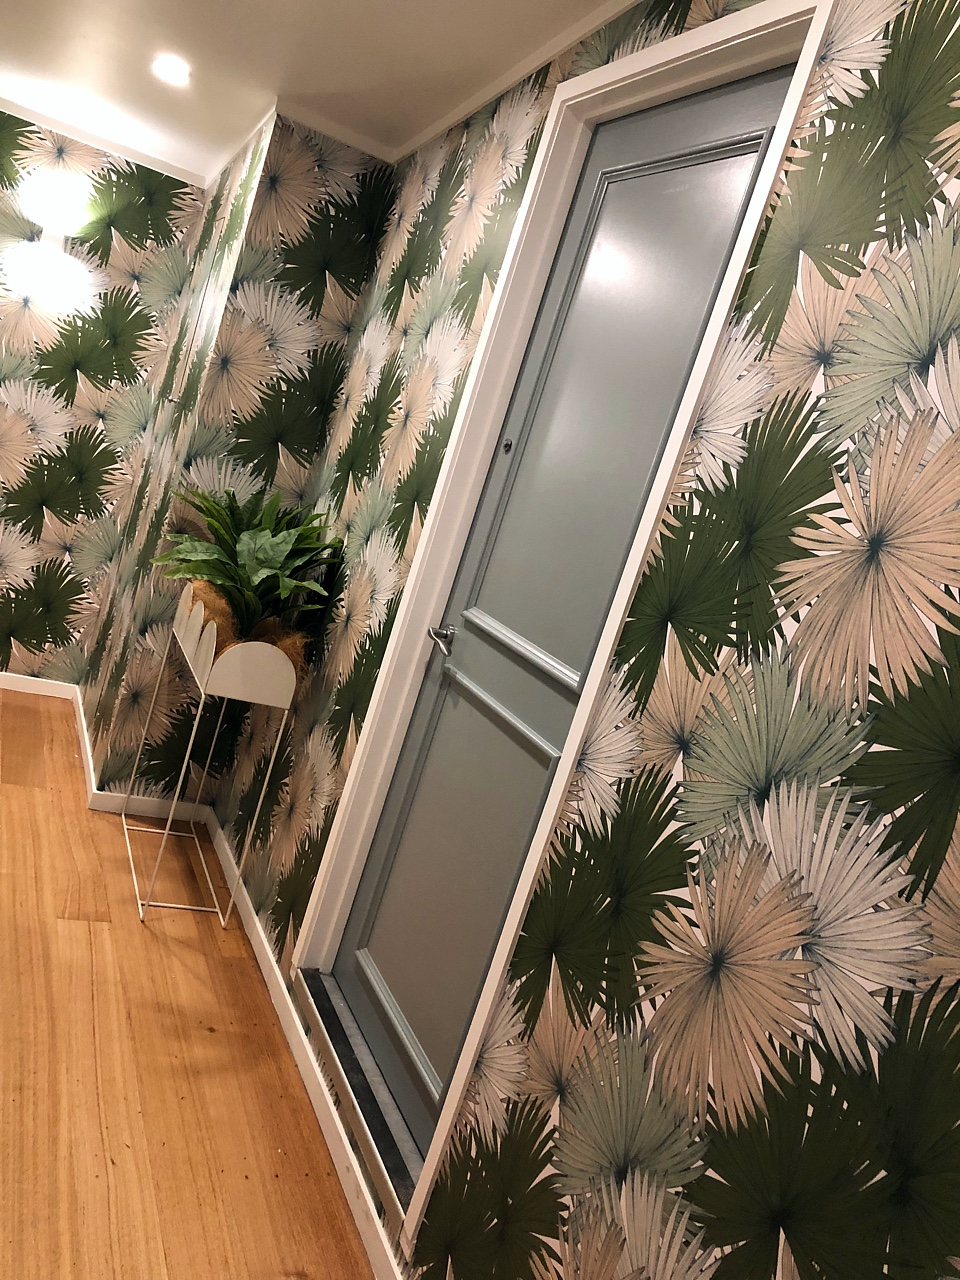 hallway design with palm leaves wallpaper and planter box